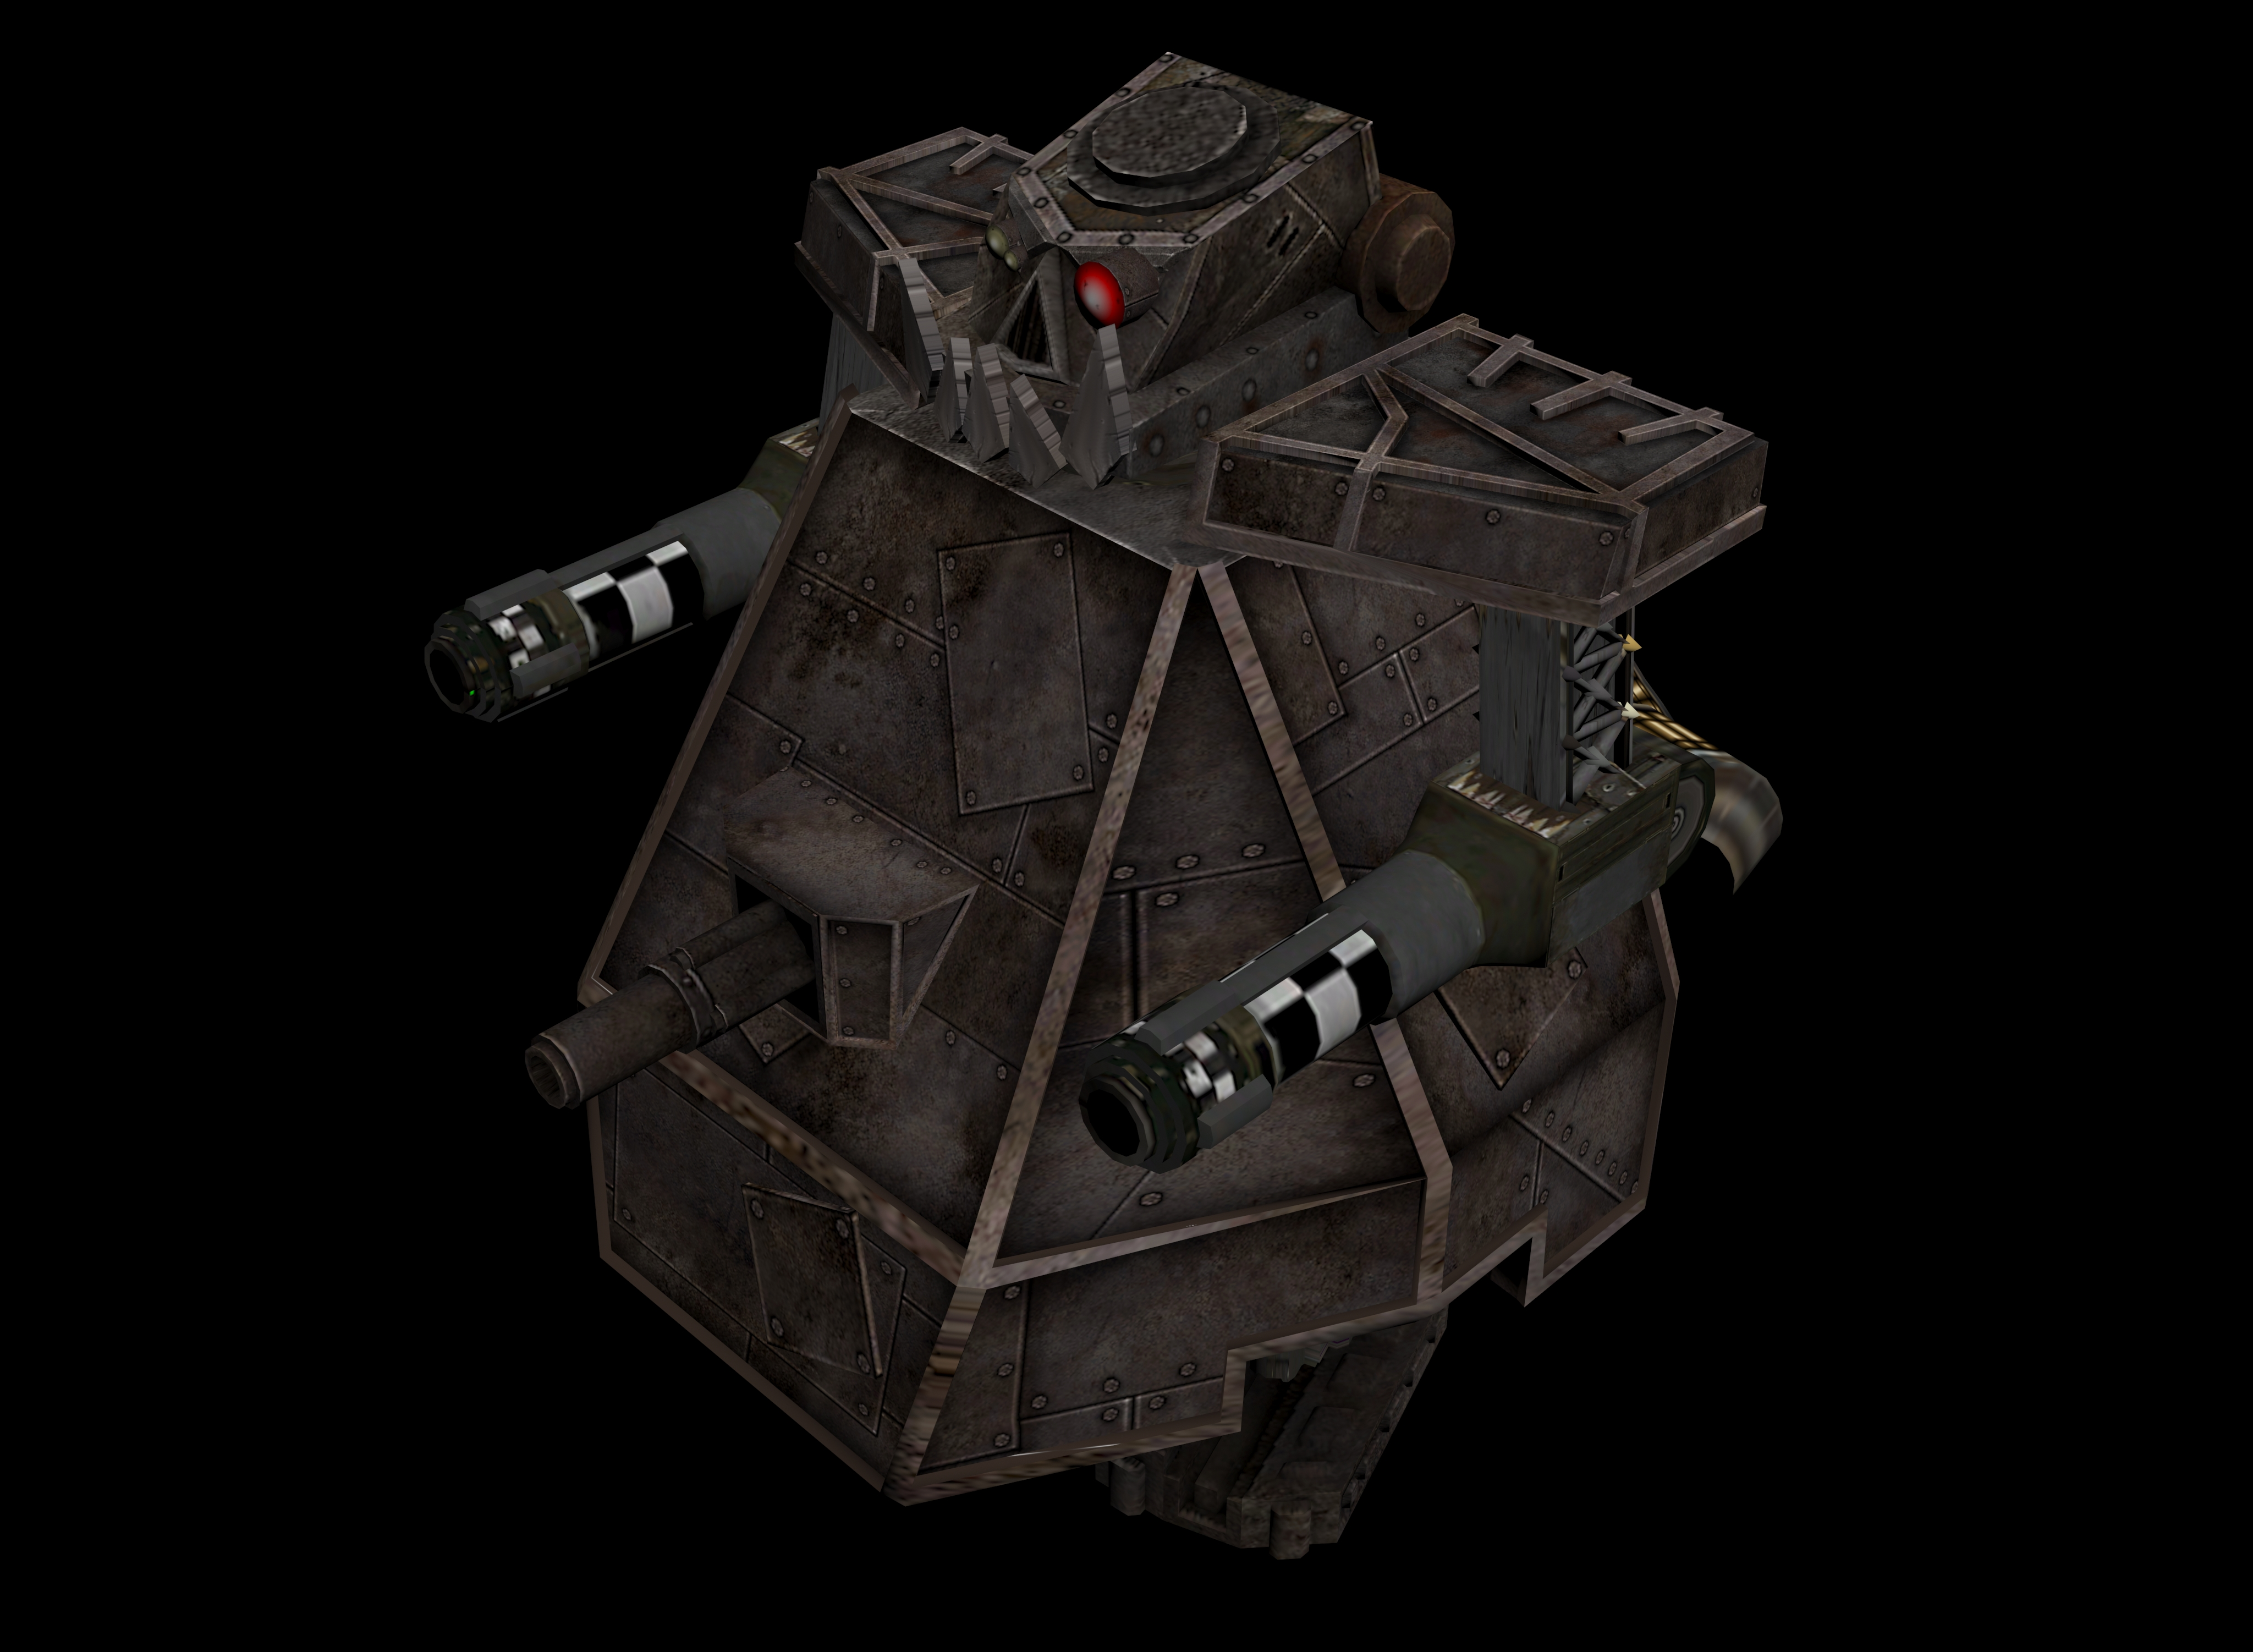 Ultimate apocalypse mod dow ss for dawn of war mod db in game export inbound news from joazzz the gargant got updated publicscrutiny Image collections